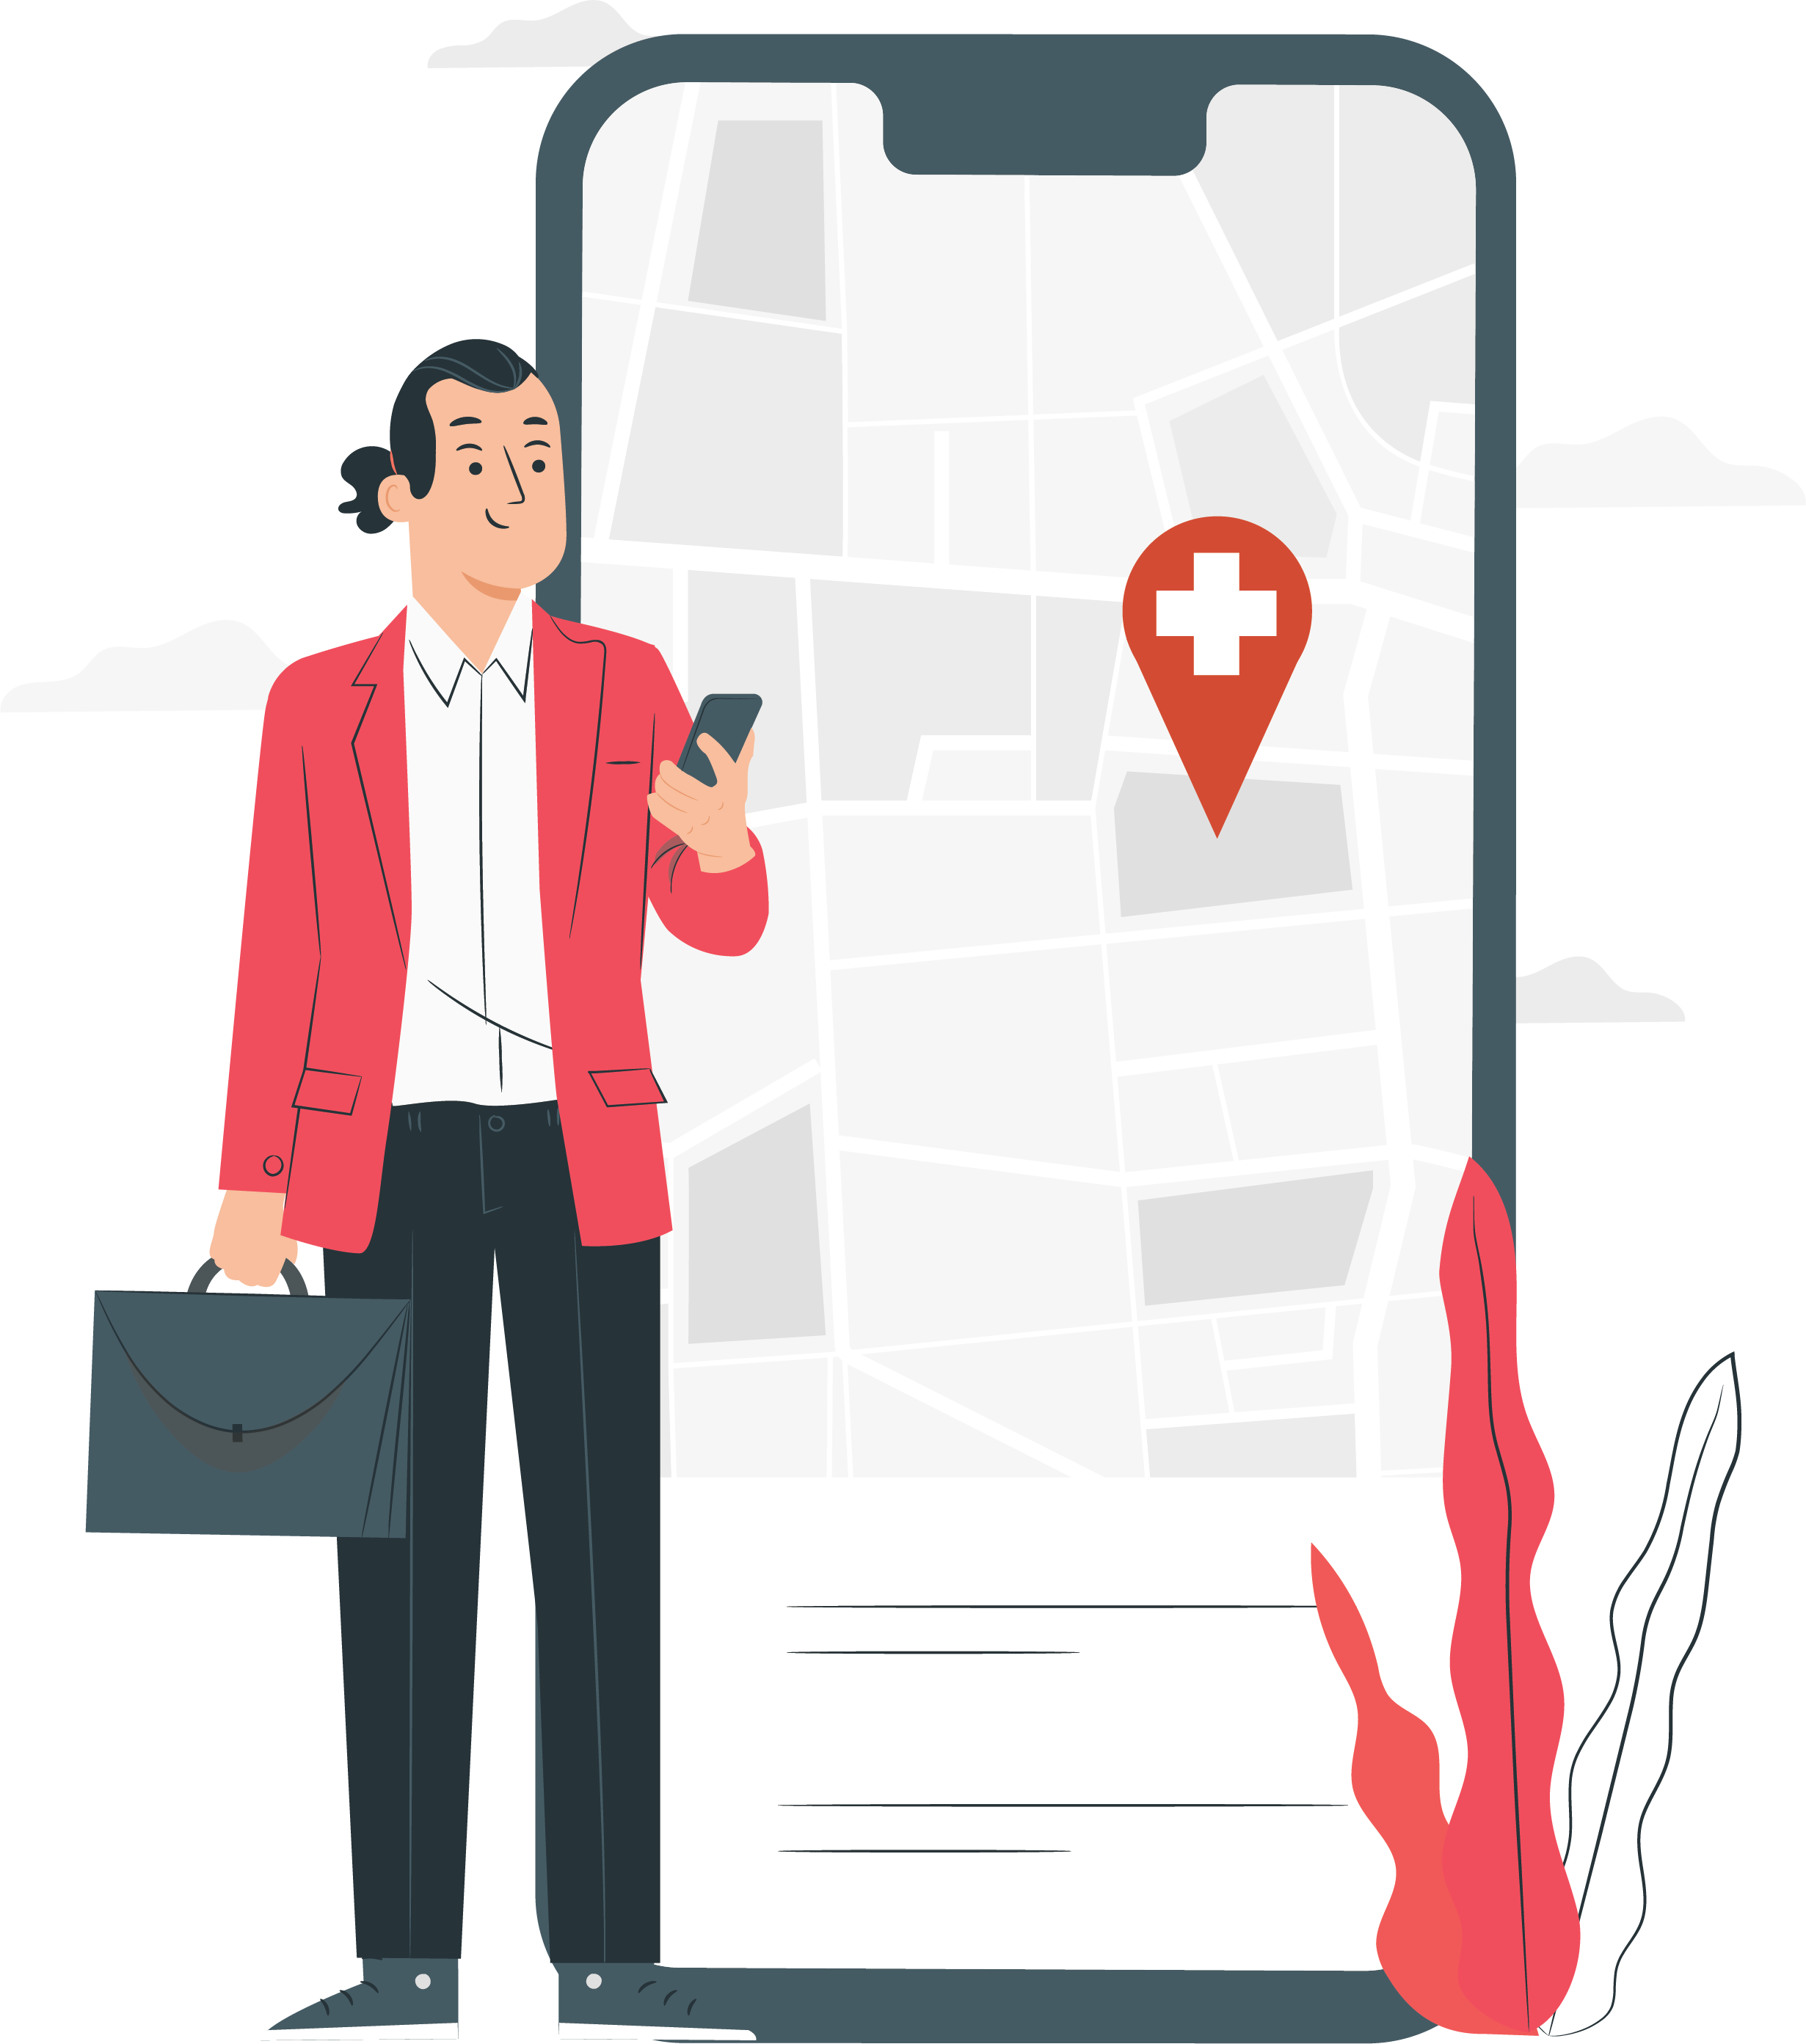 A man uses the Lazarillo app to navigate to a hospital.